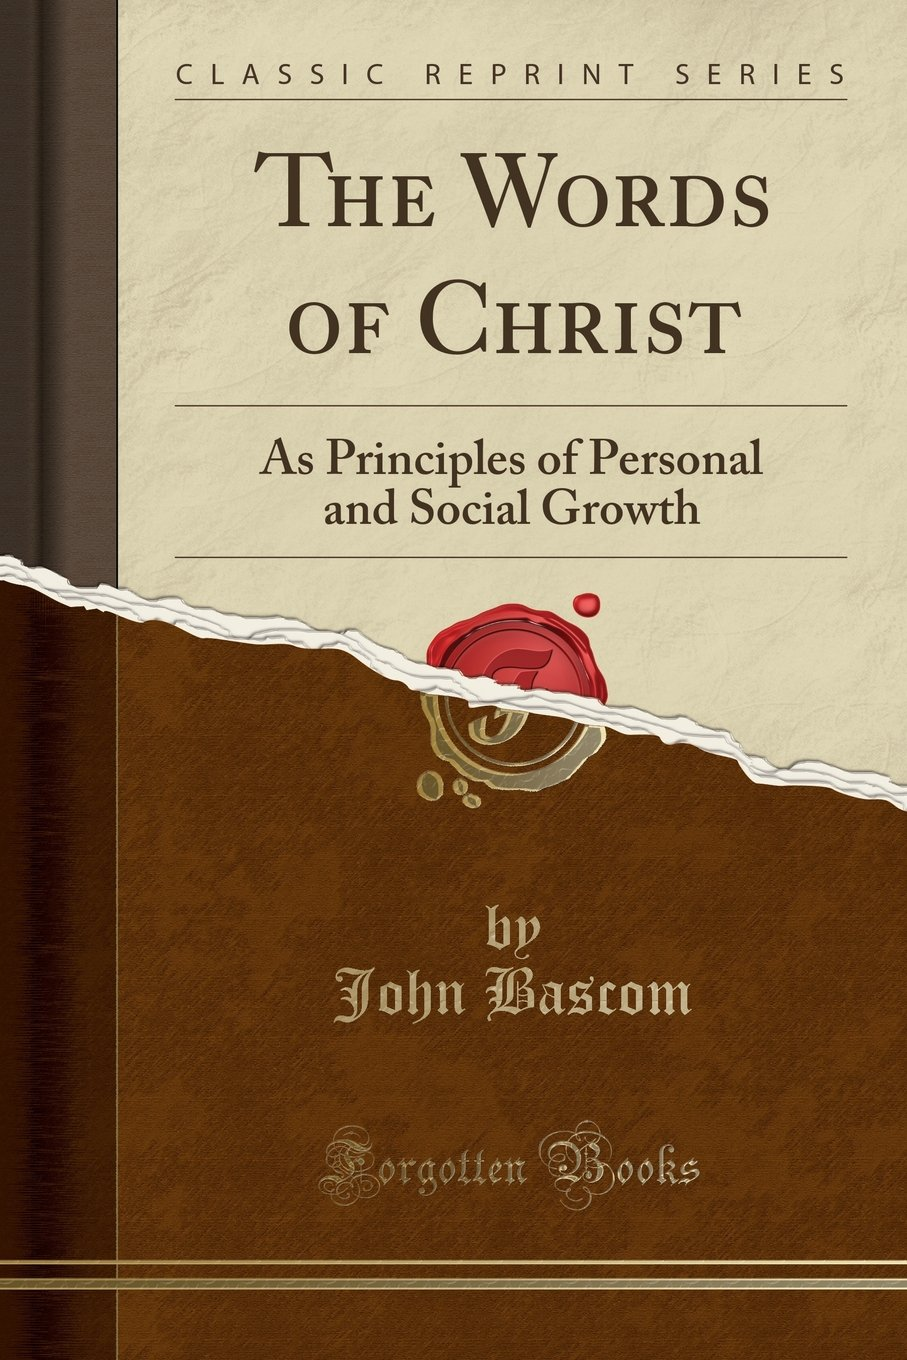 The Words of Christ: As Principles of Personal and Social Growth (Classic Reprint) ebook